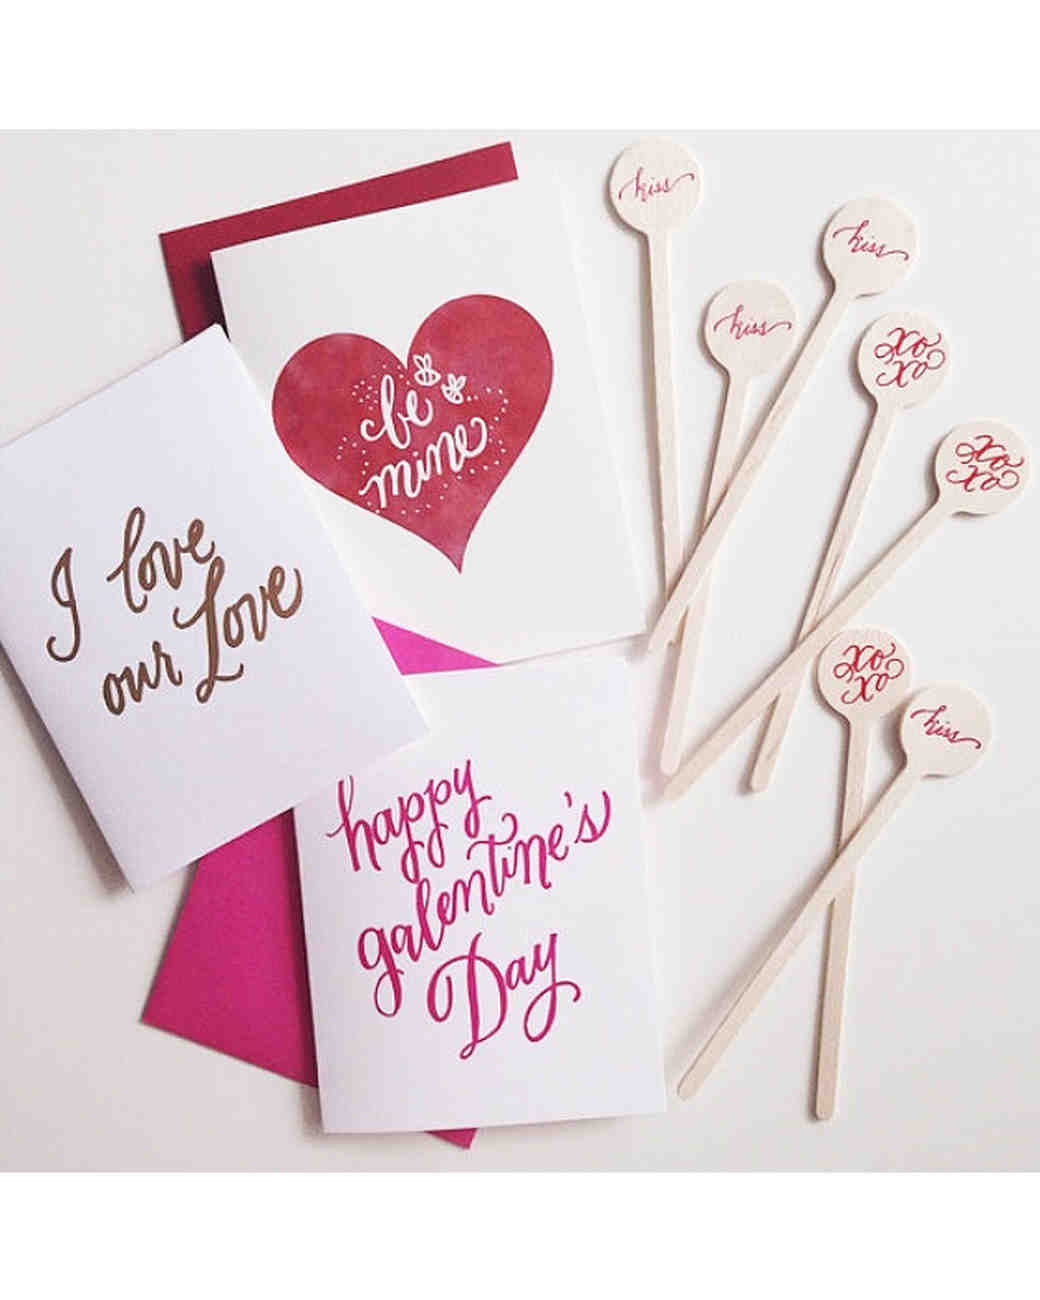 7 d cor ideas for a valentine 39 s day party martha stewart for Valentines day trip ideas